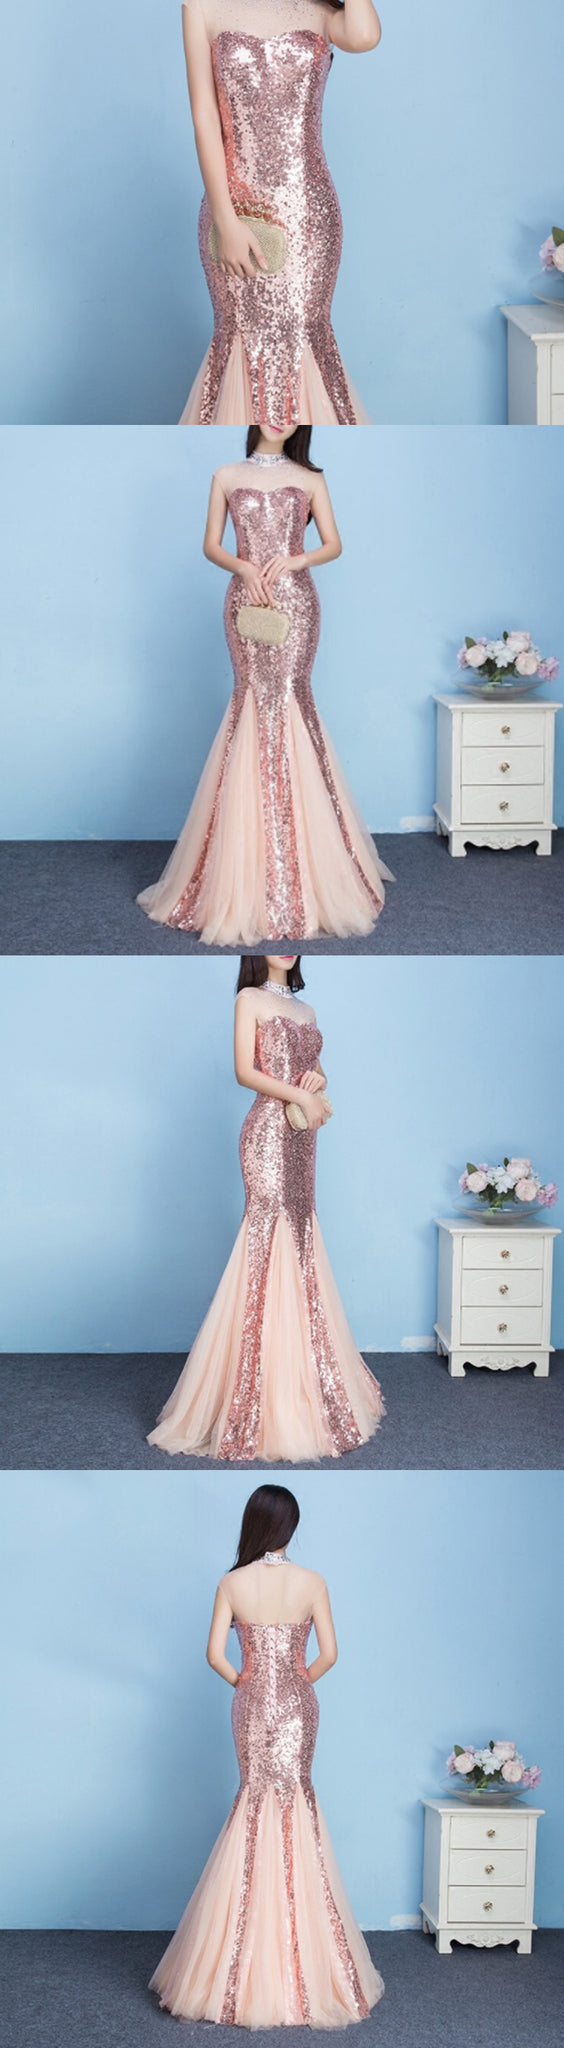 Pink Sequins High Neck See Through Charming Mermaid Evening Prom ...